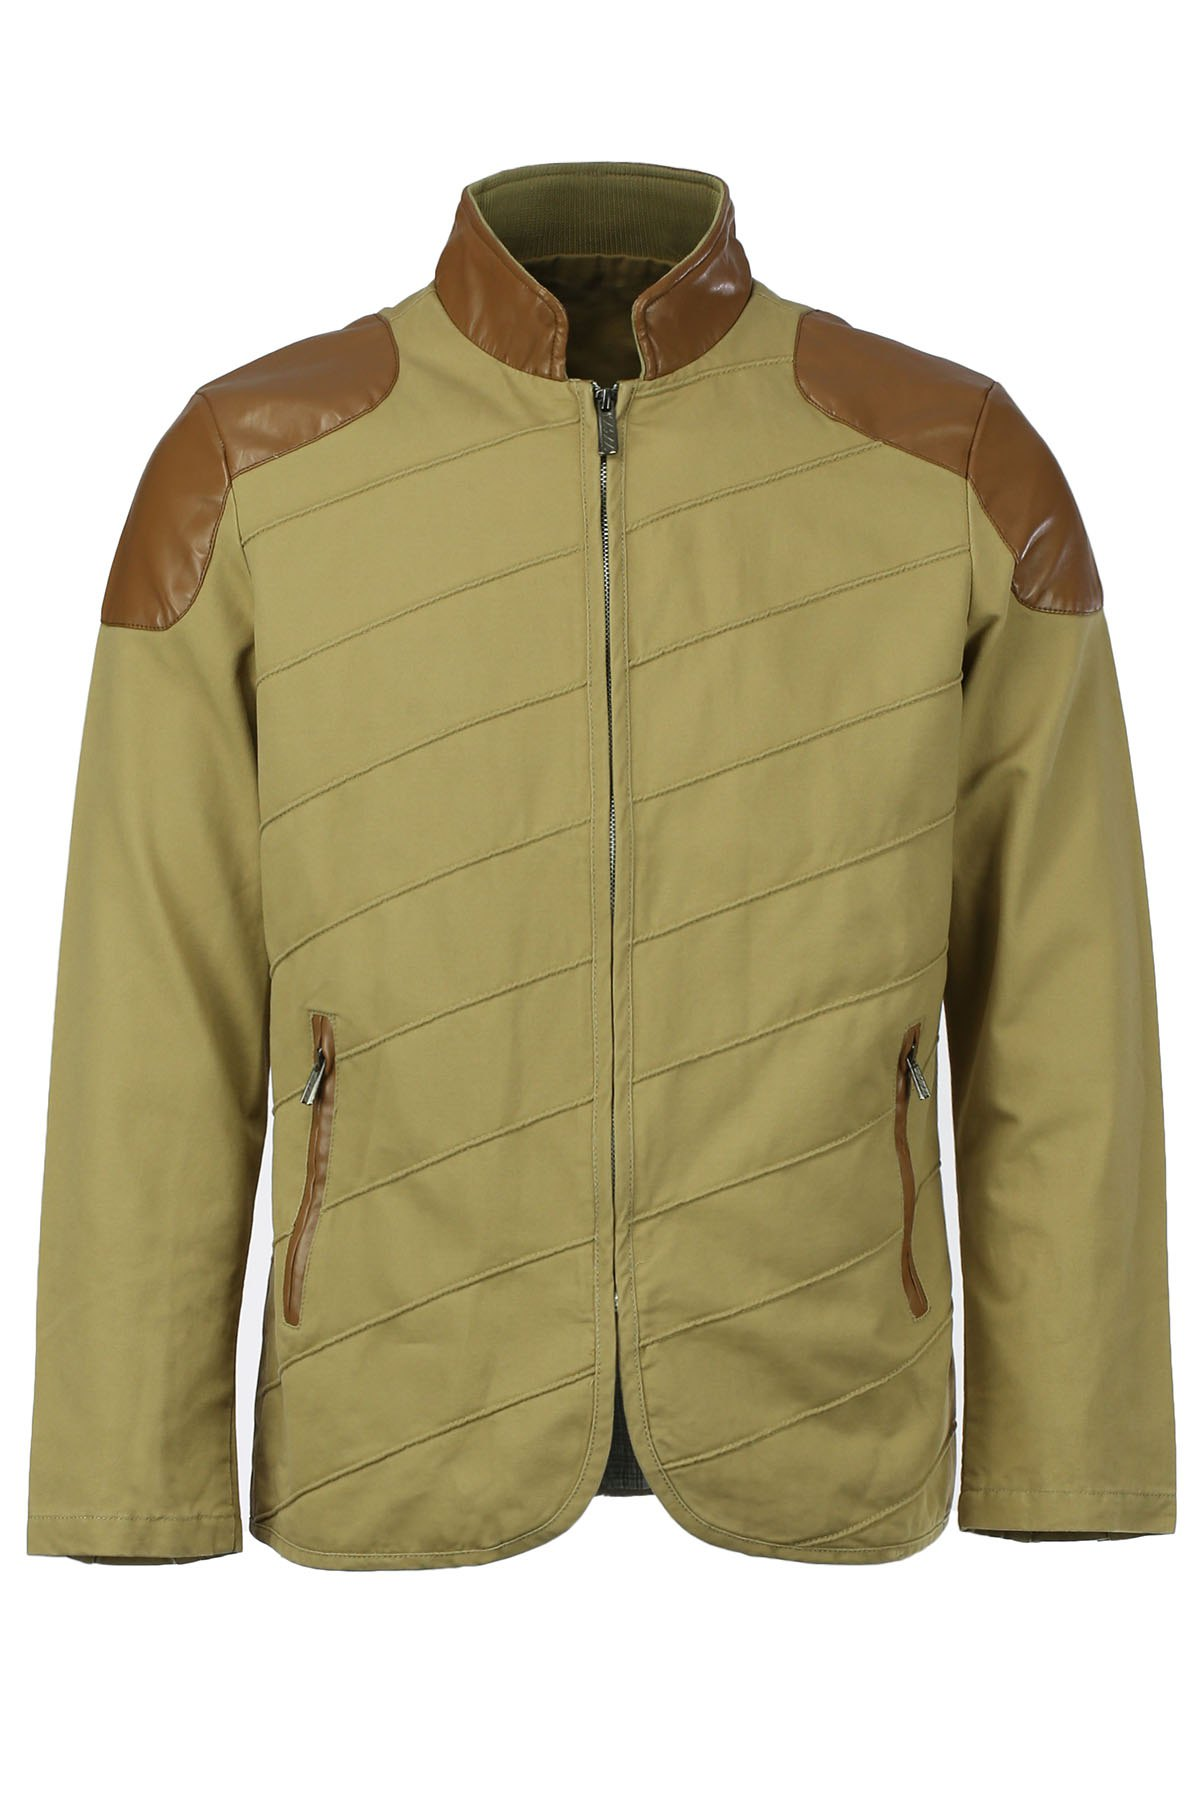 Modish Stand Collar Multi-Zipper PU Leather Spliced Color Block Men's Long Sleeves Jacket - KHAKI XL